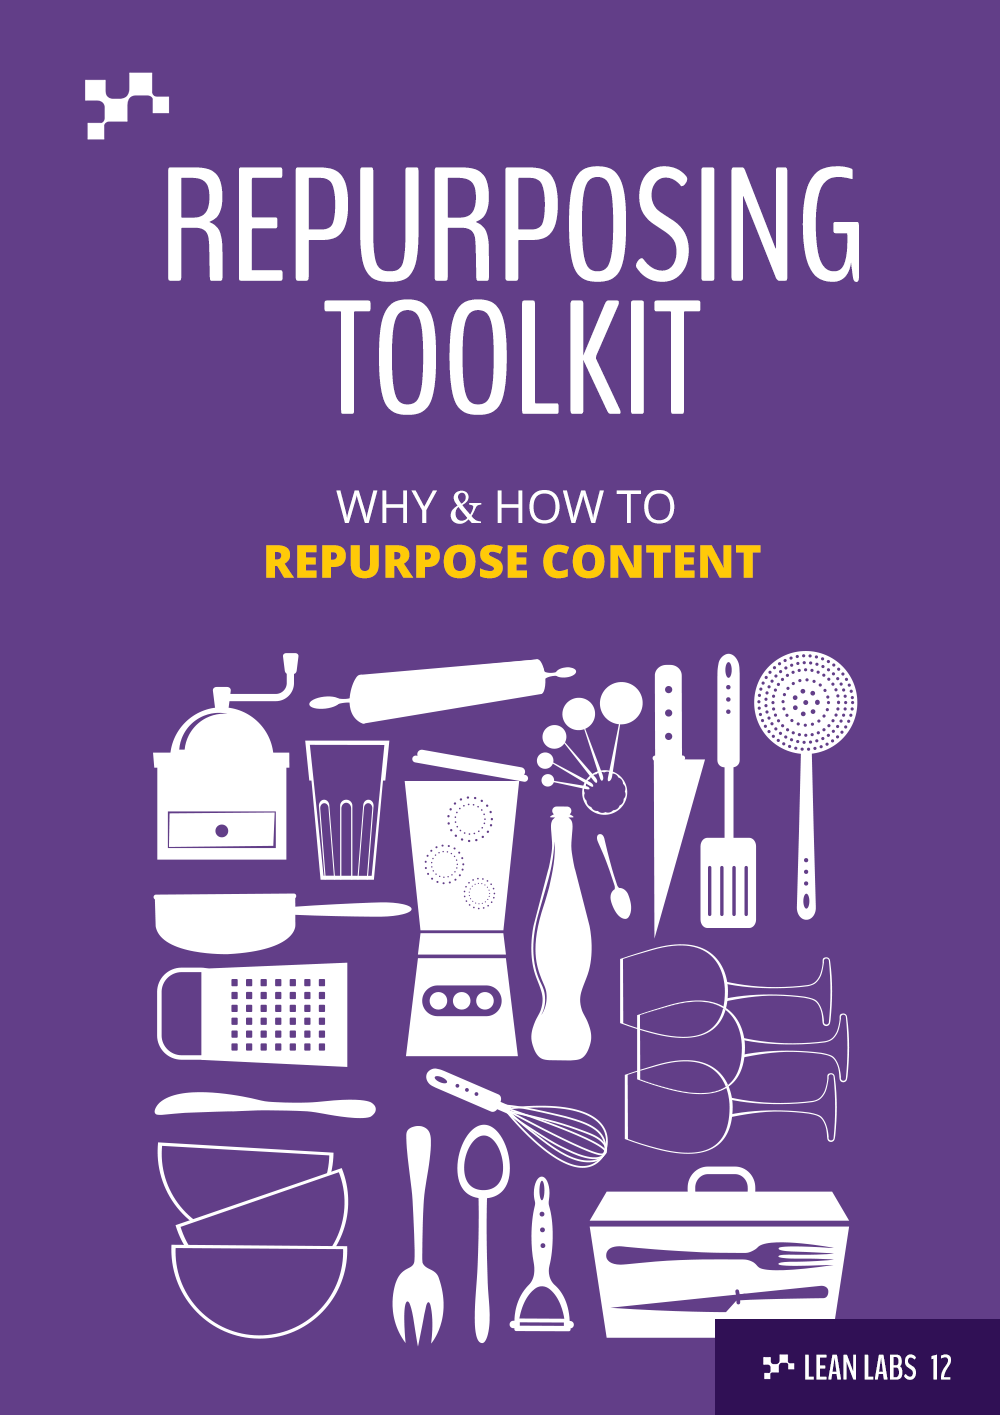 Repurposing Toolkit